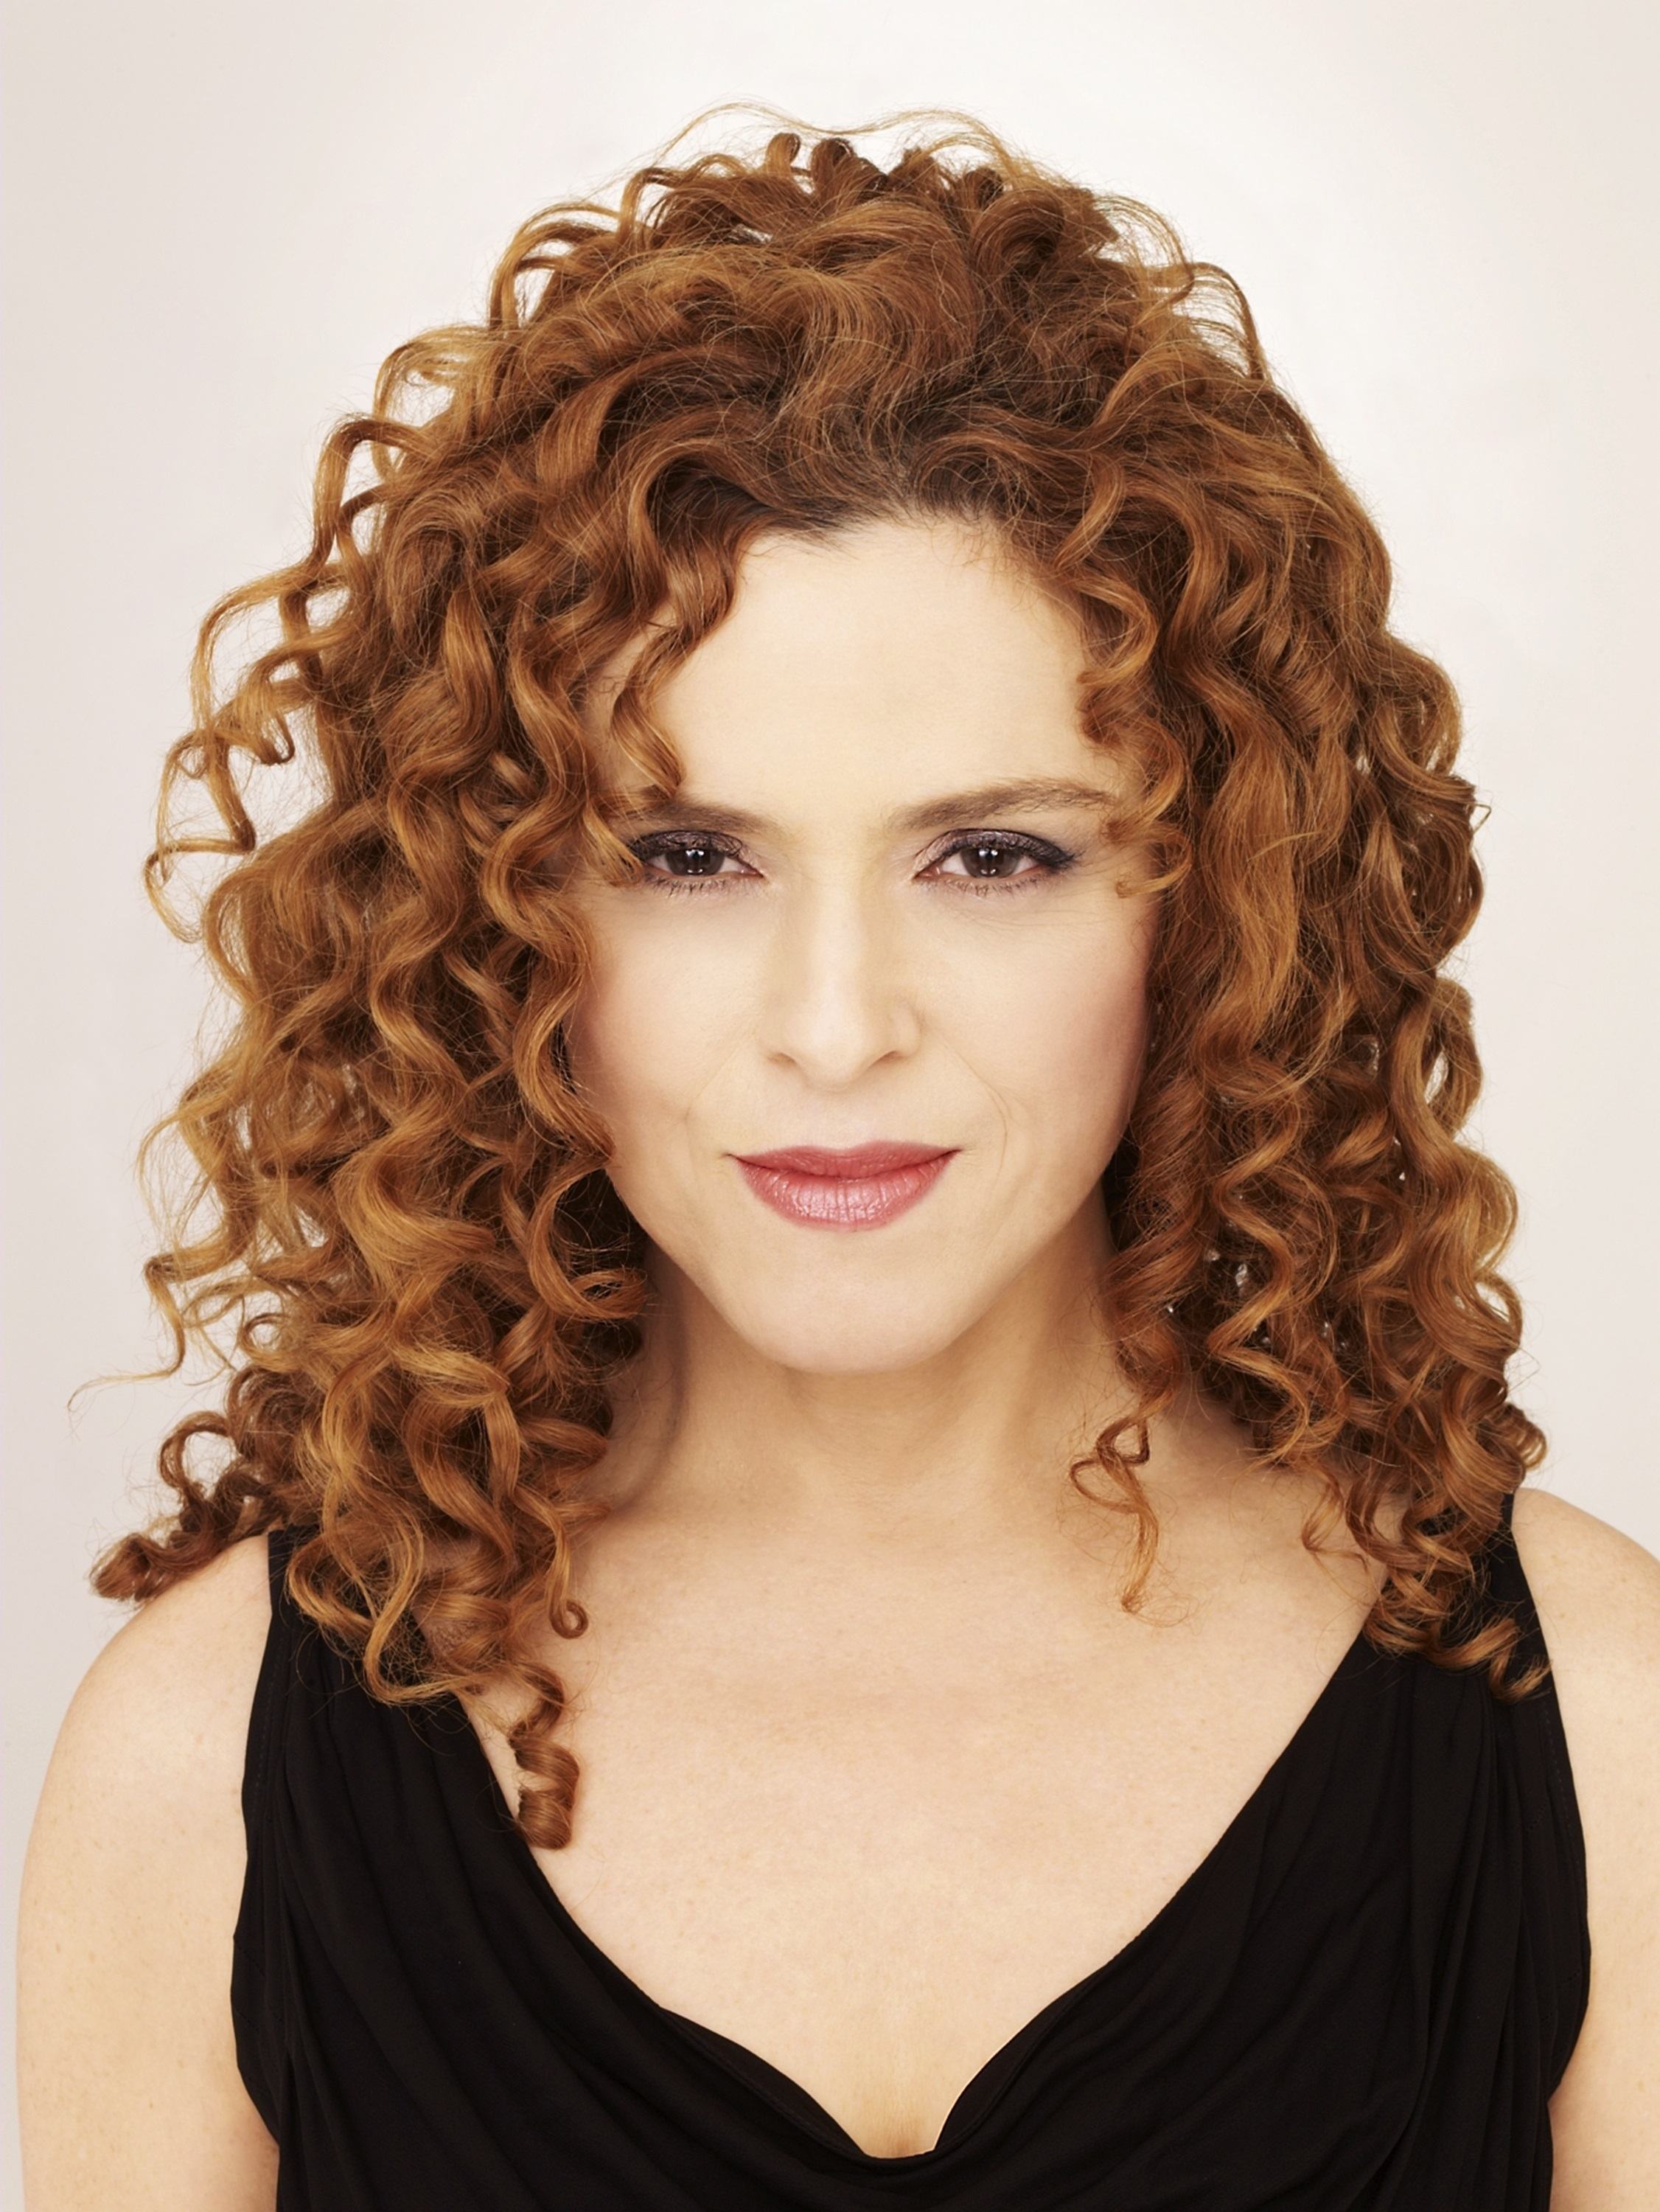 Bernadette Peters. Photo courtesy of O&M.